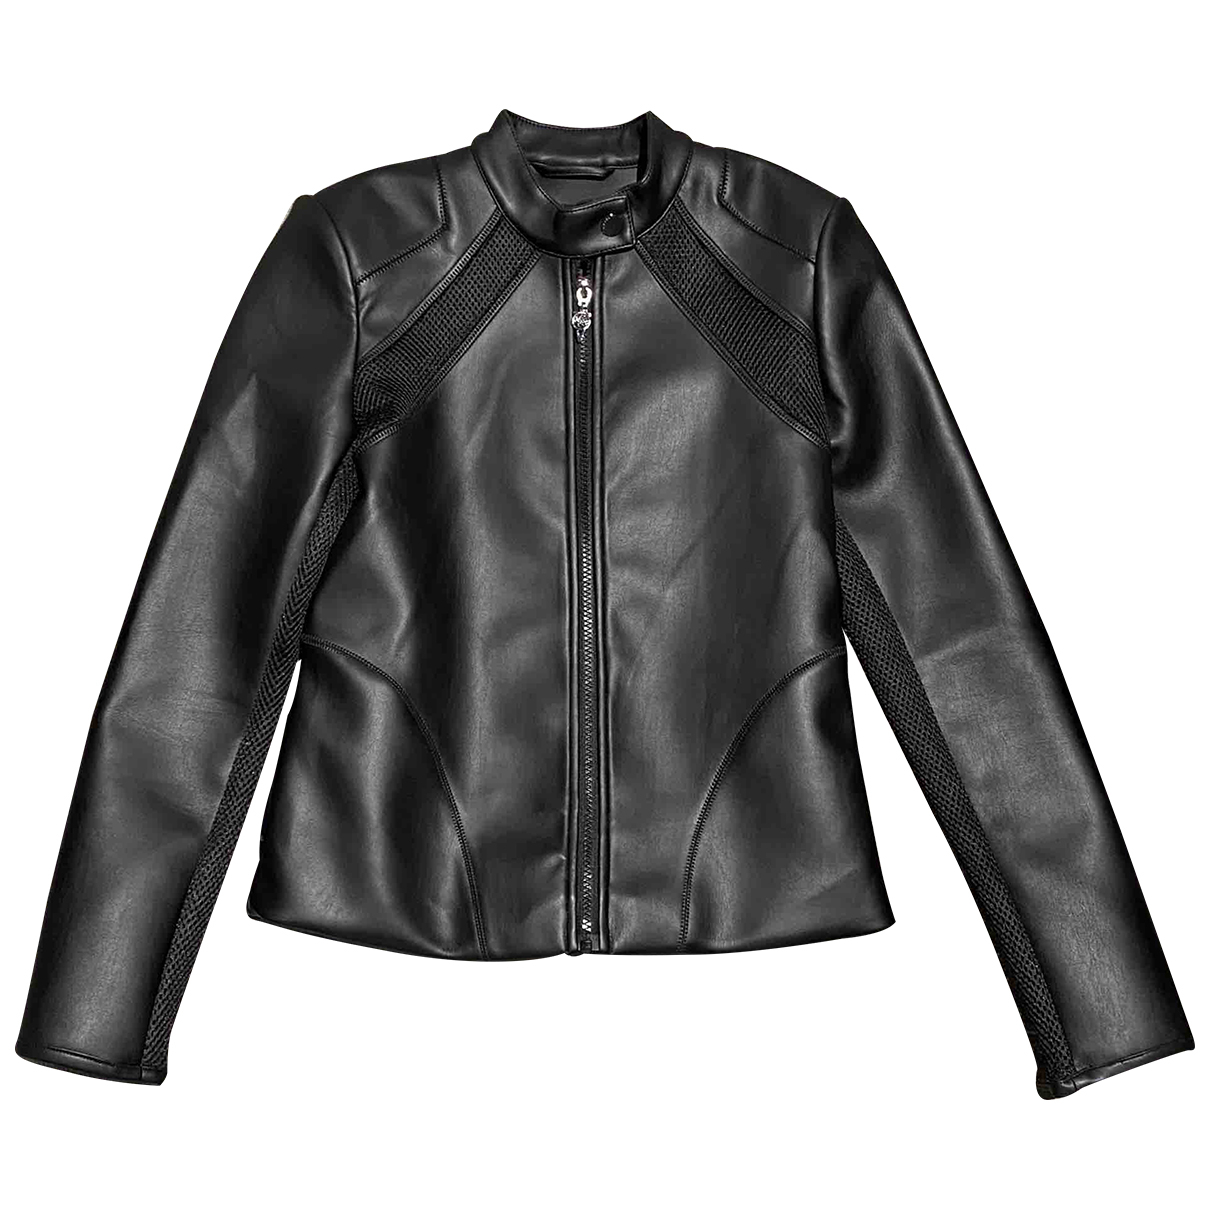 Guess \N Black Leather jacket for Women S International